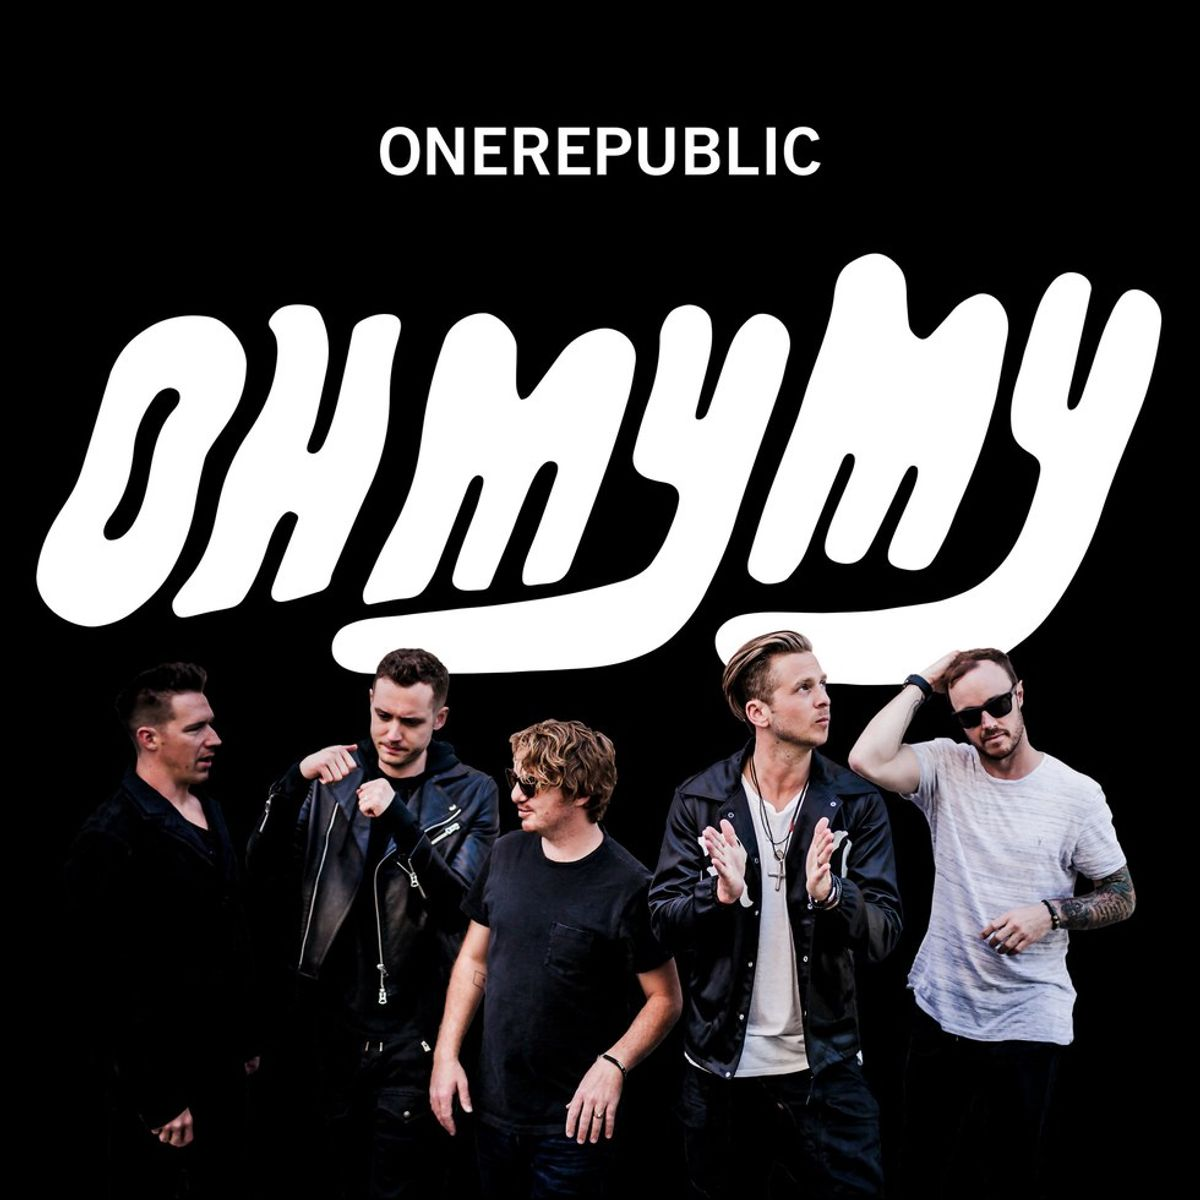 A Guide To The New OneRepublic Album